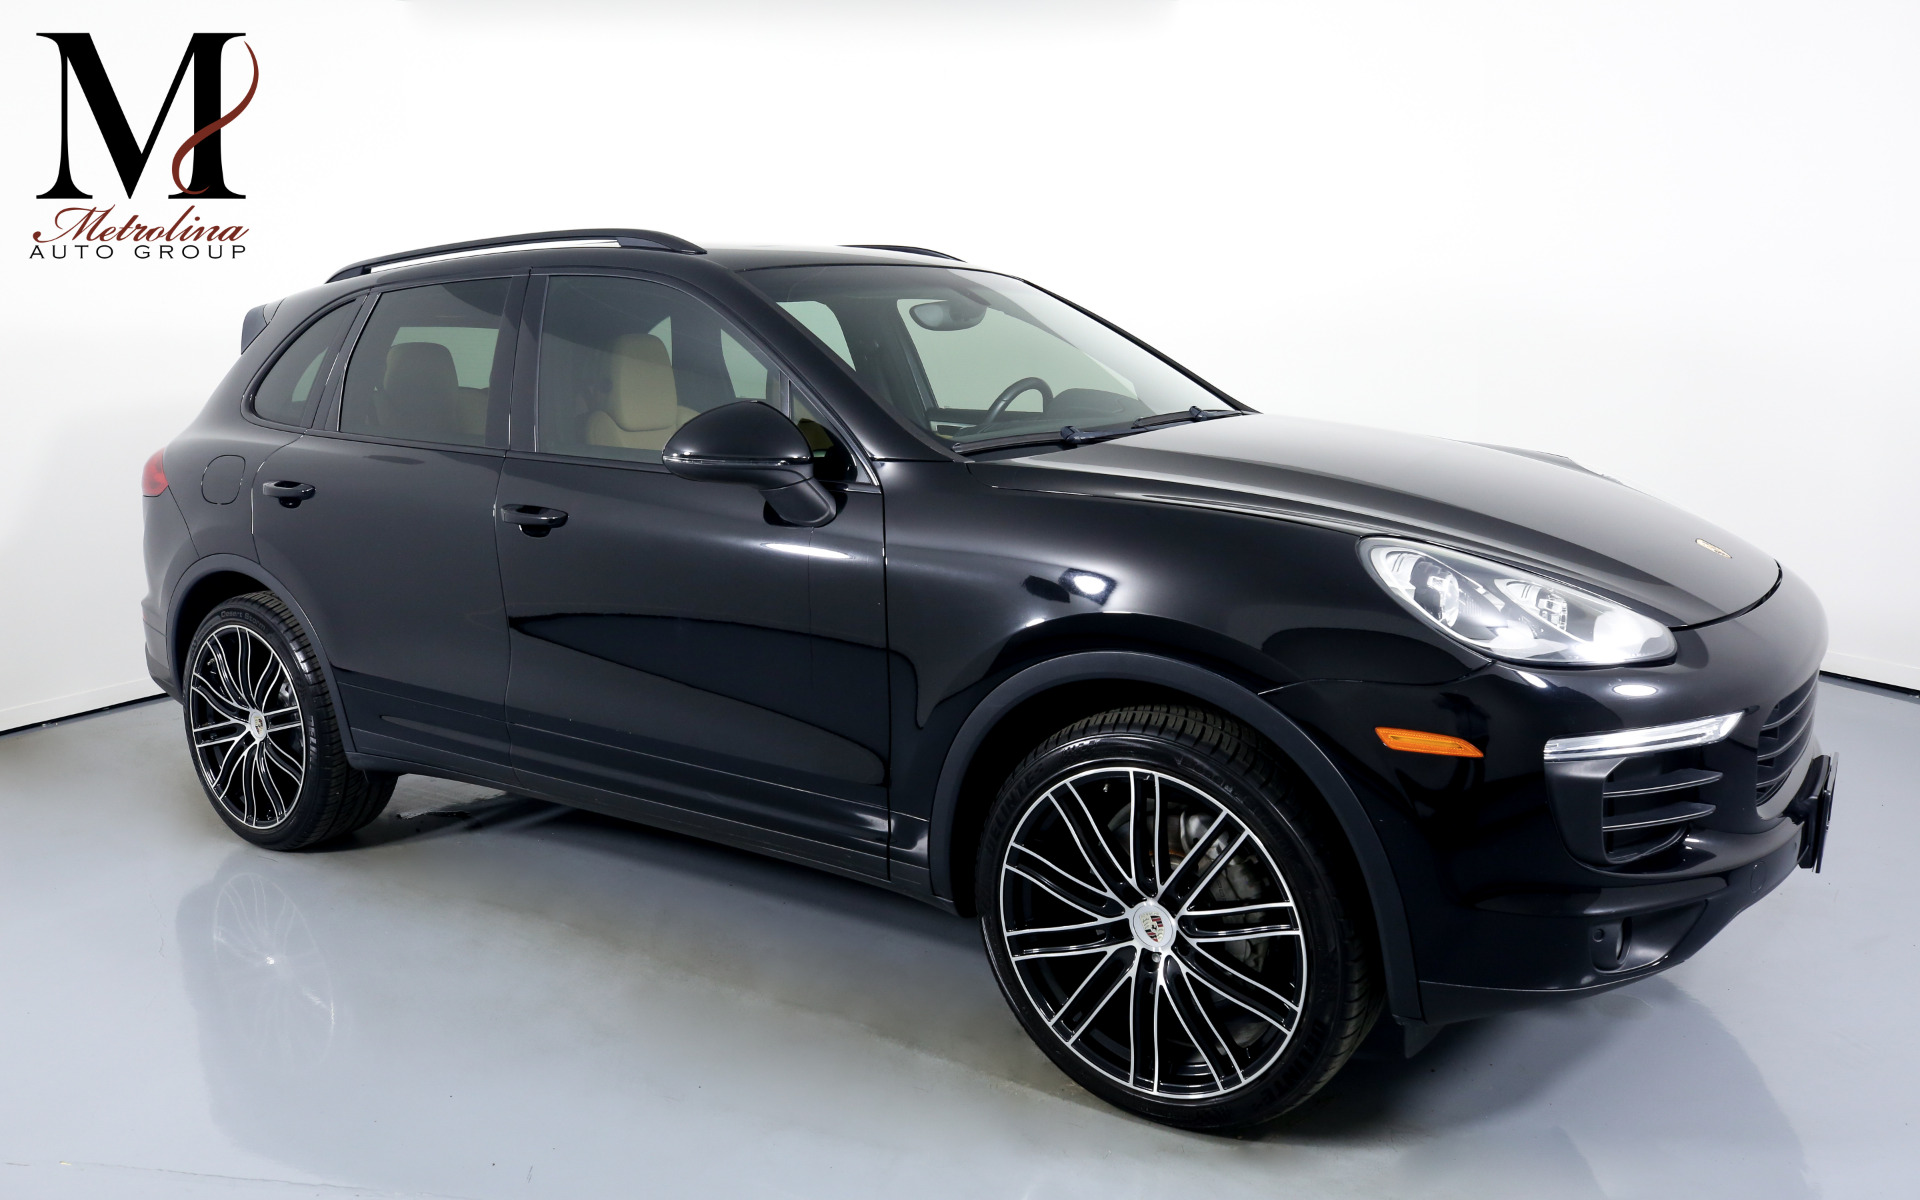 Used 2016 Porsche Cayenne for sale Sold at Metrolina Auto Group in Charlotte NC 28217 - 1